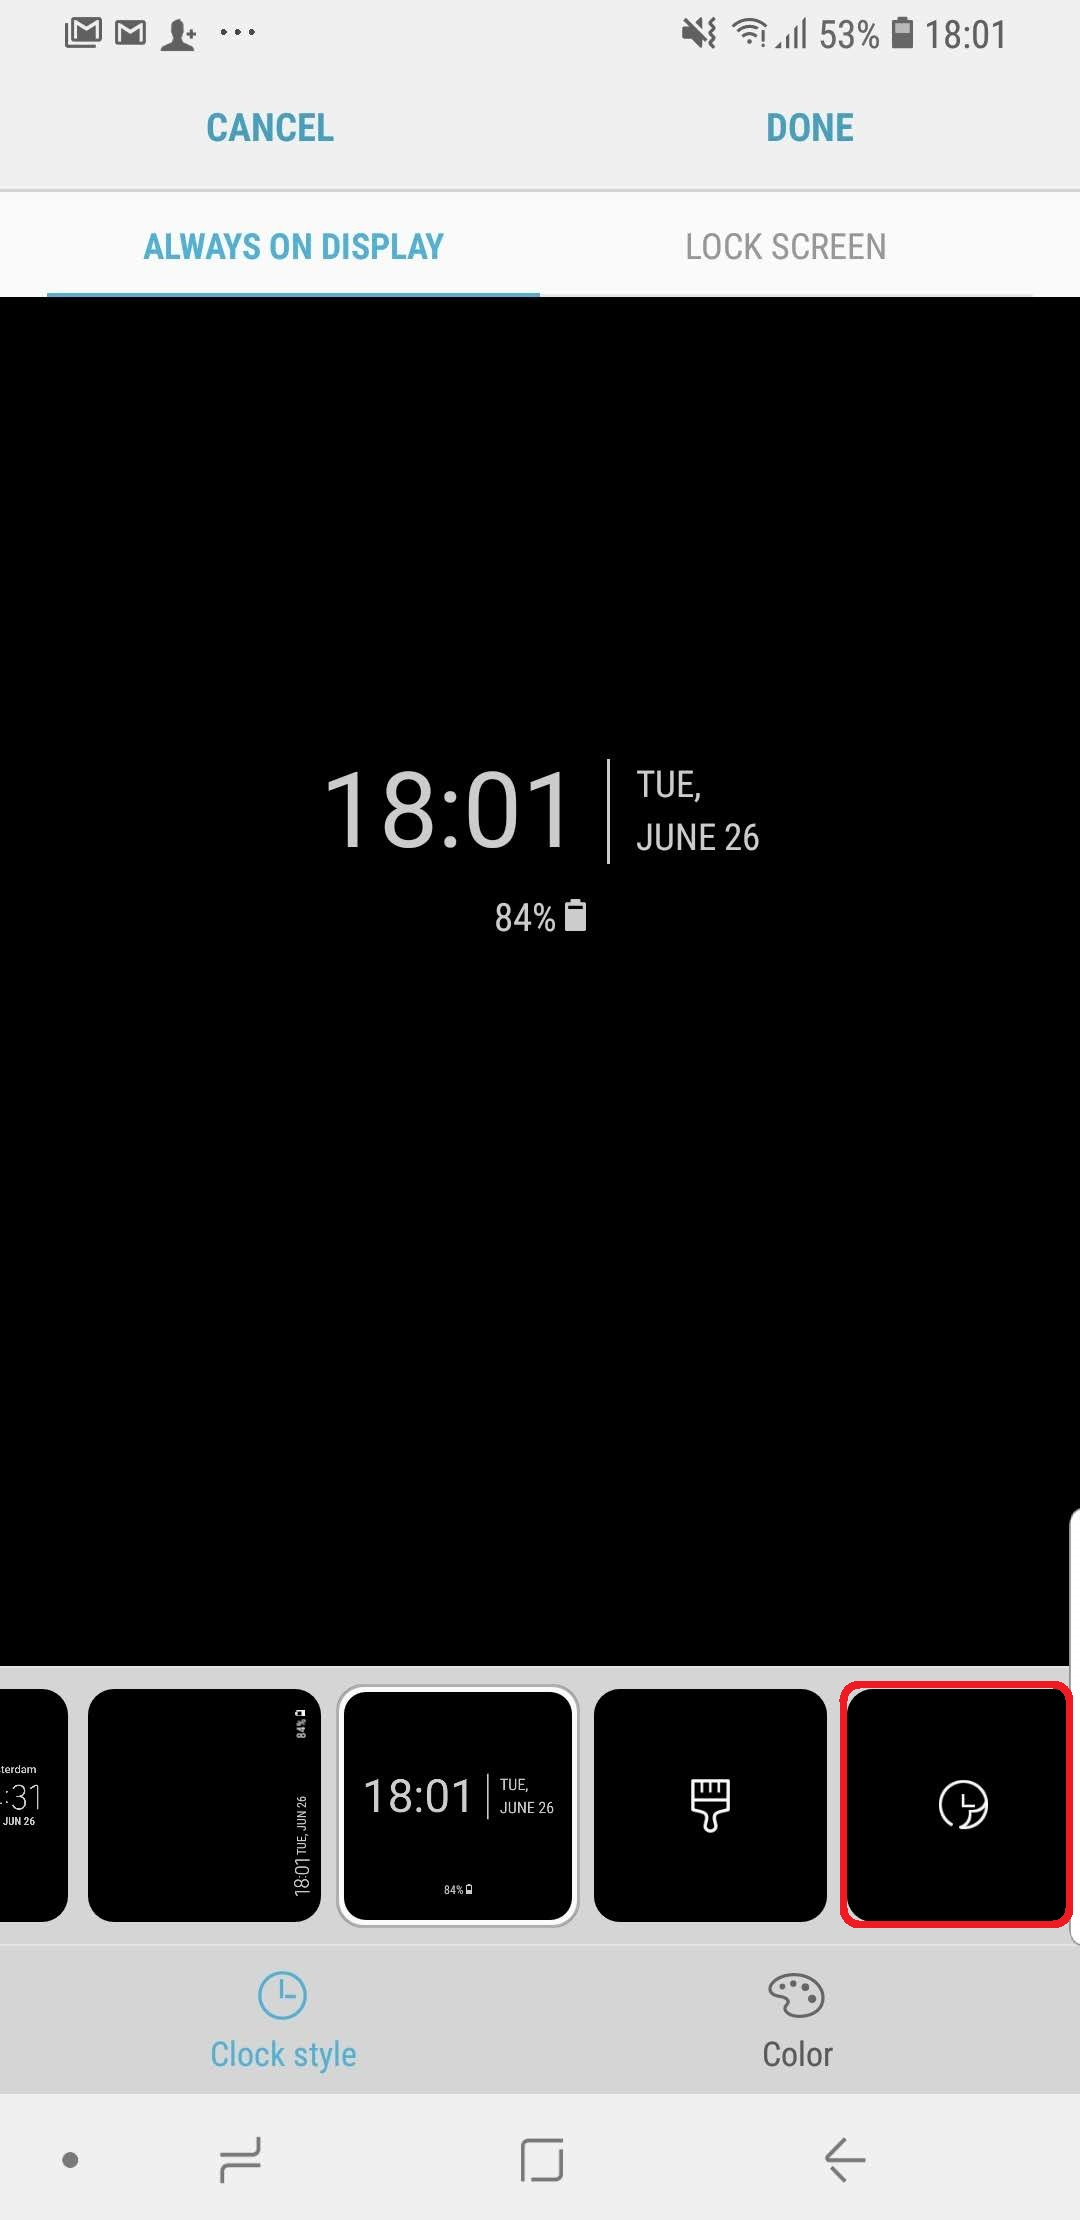 Get New Always On Display Clock Faces With This Samsung App Sammobile